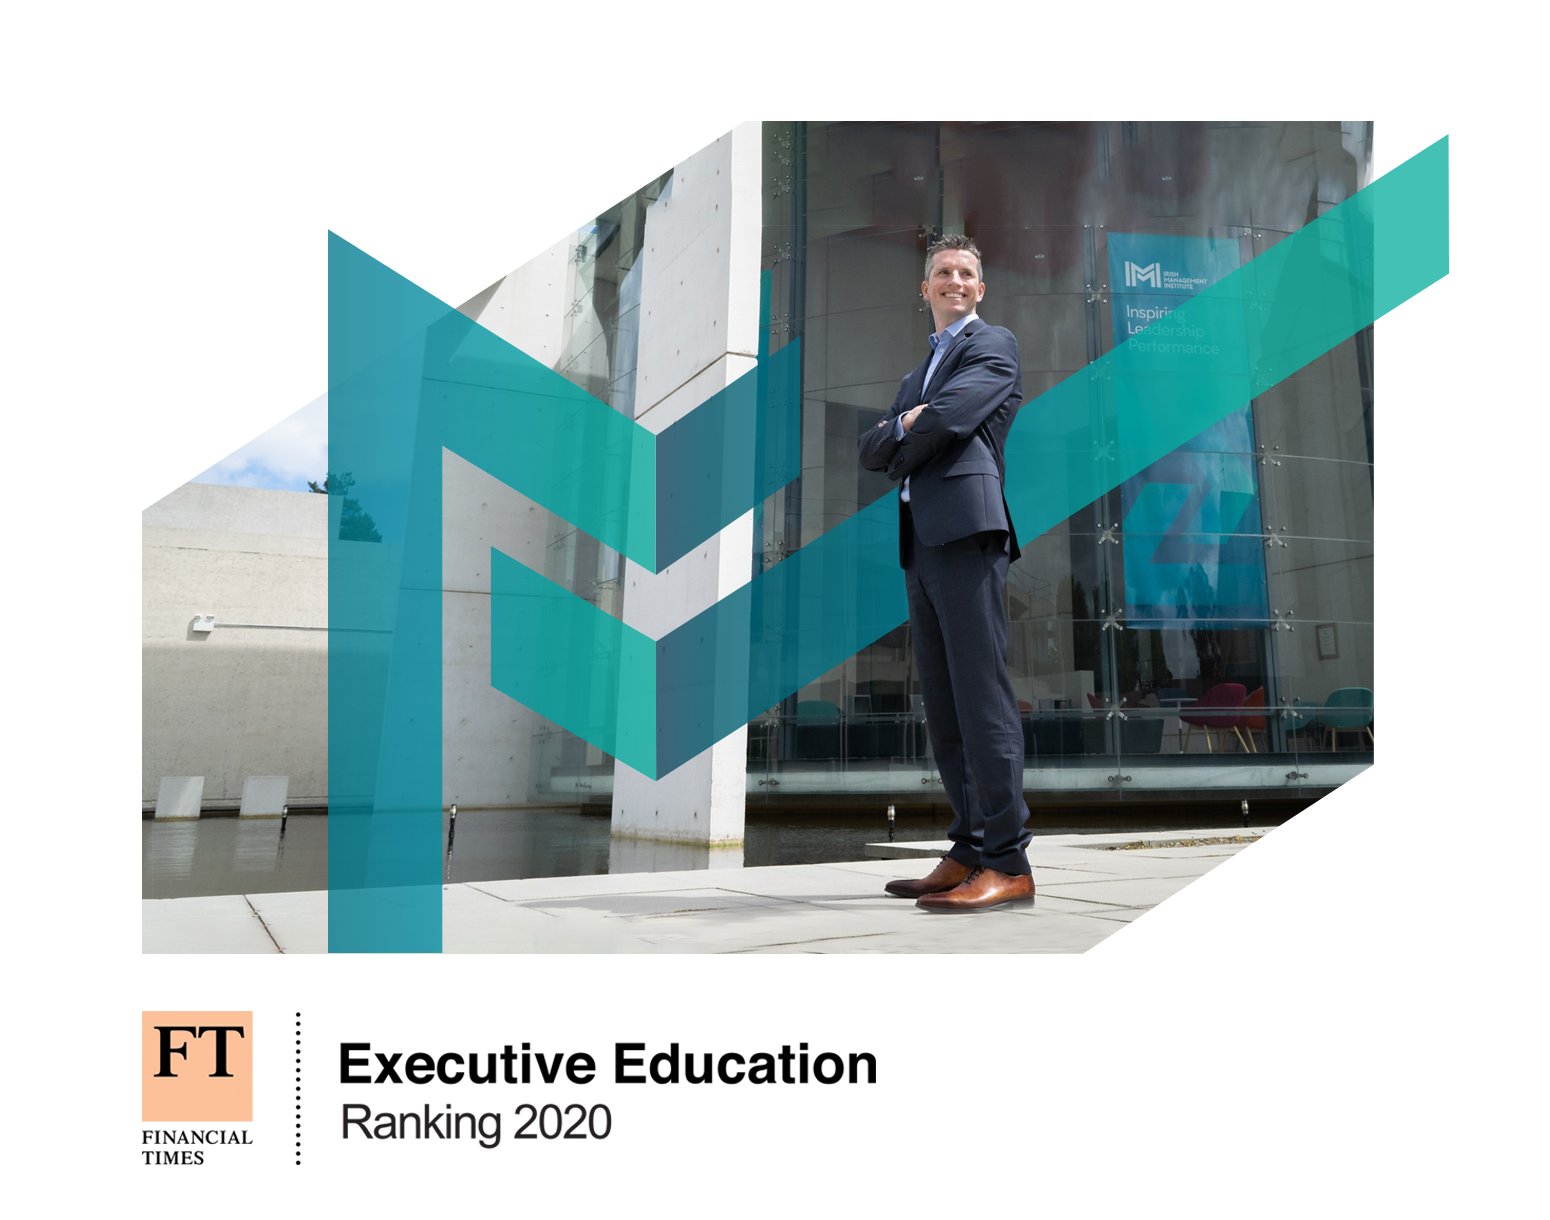 IMI amongst world top 100 in executive education